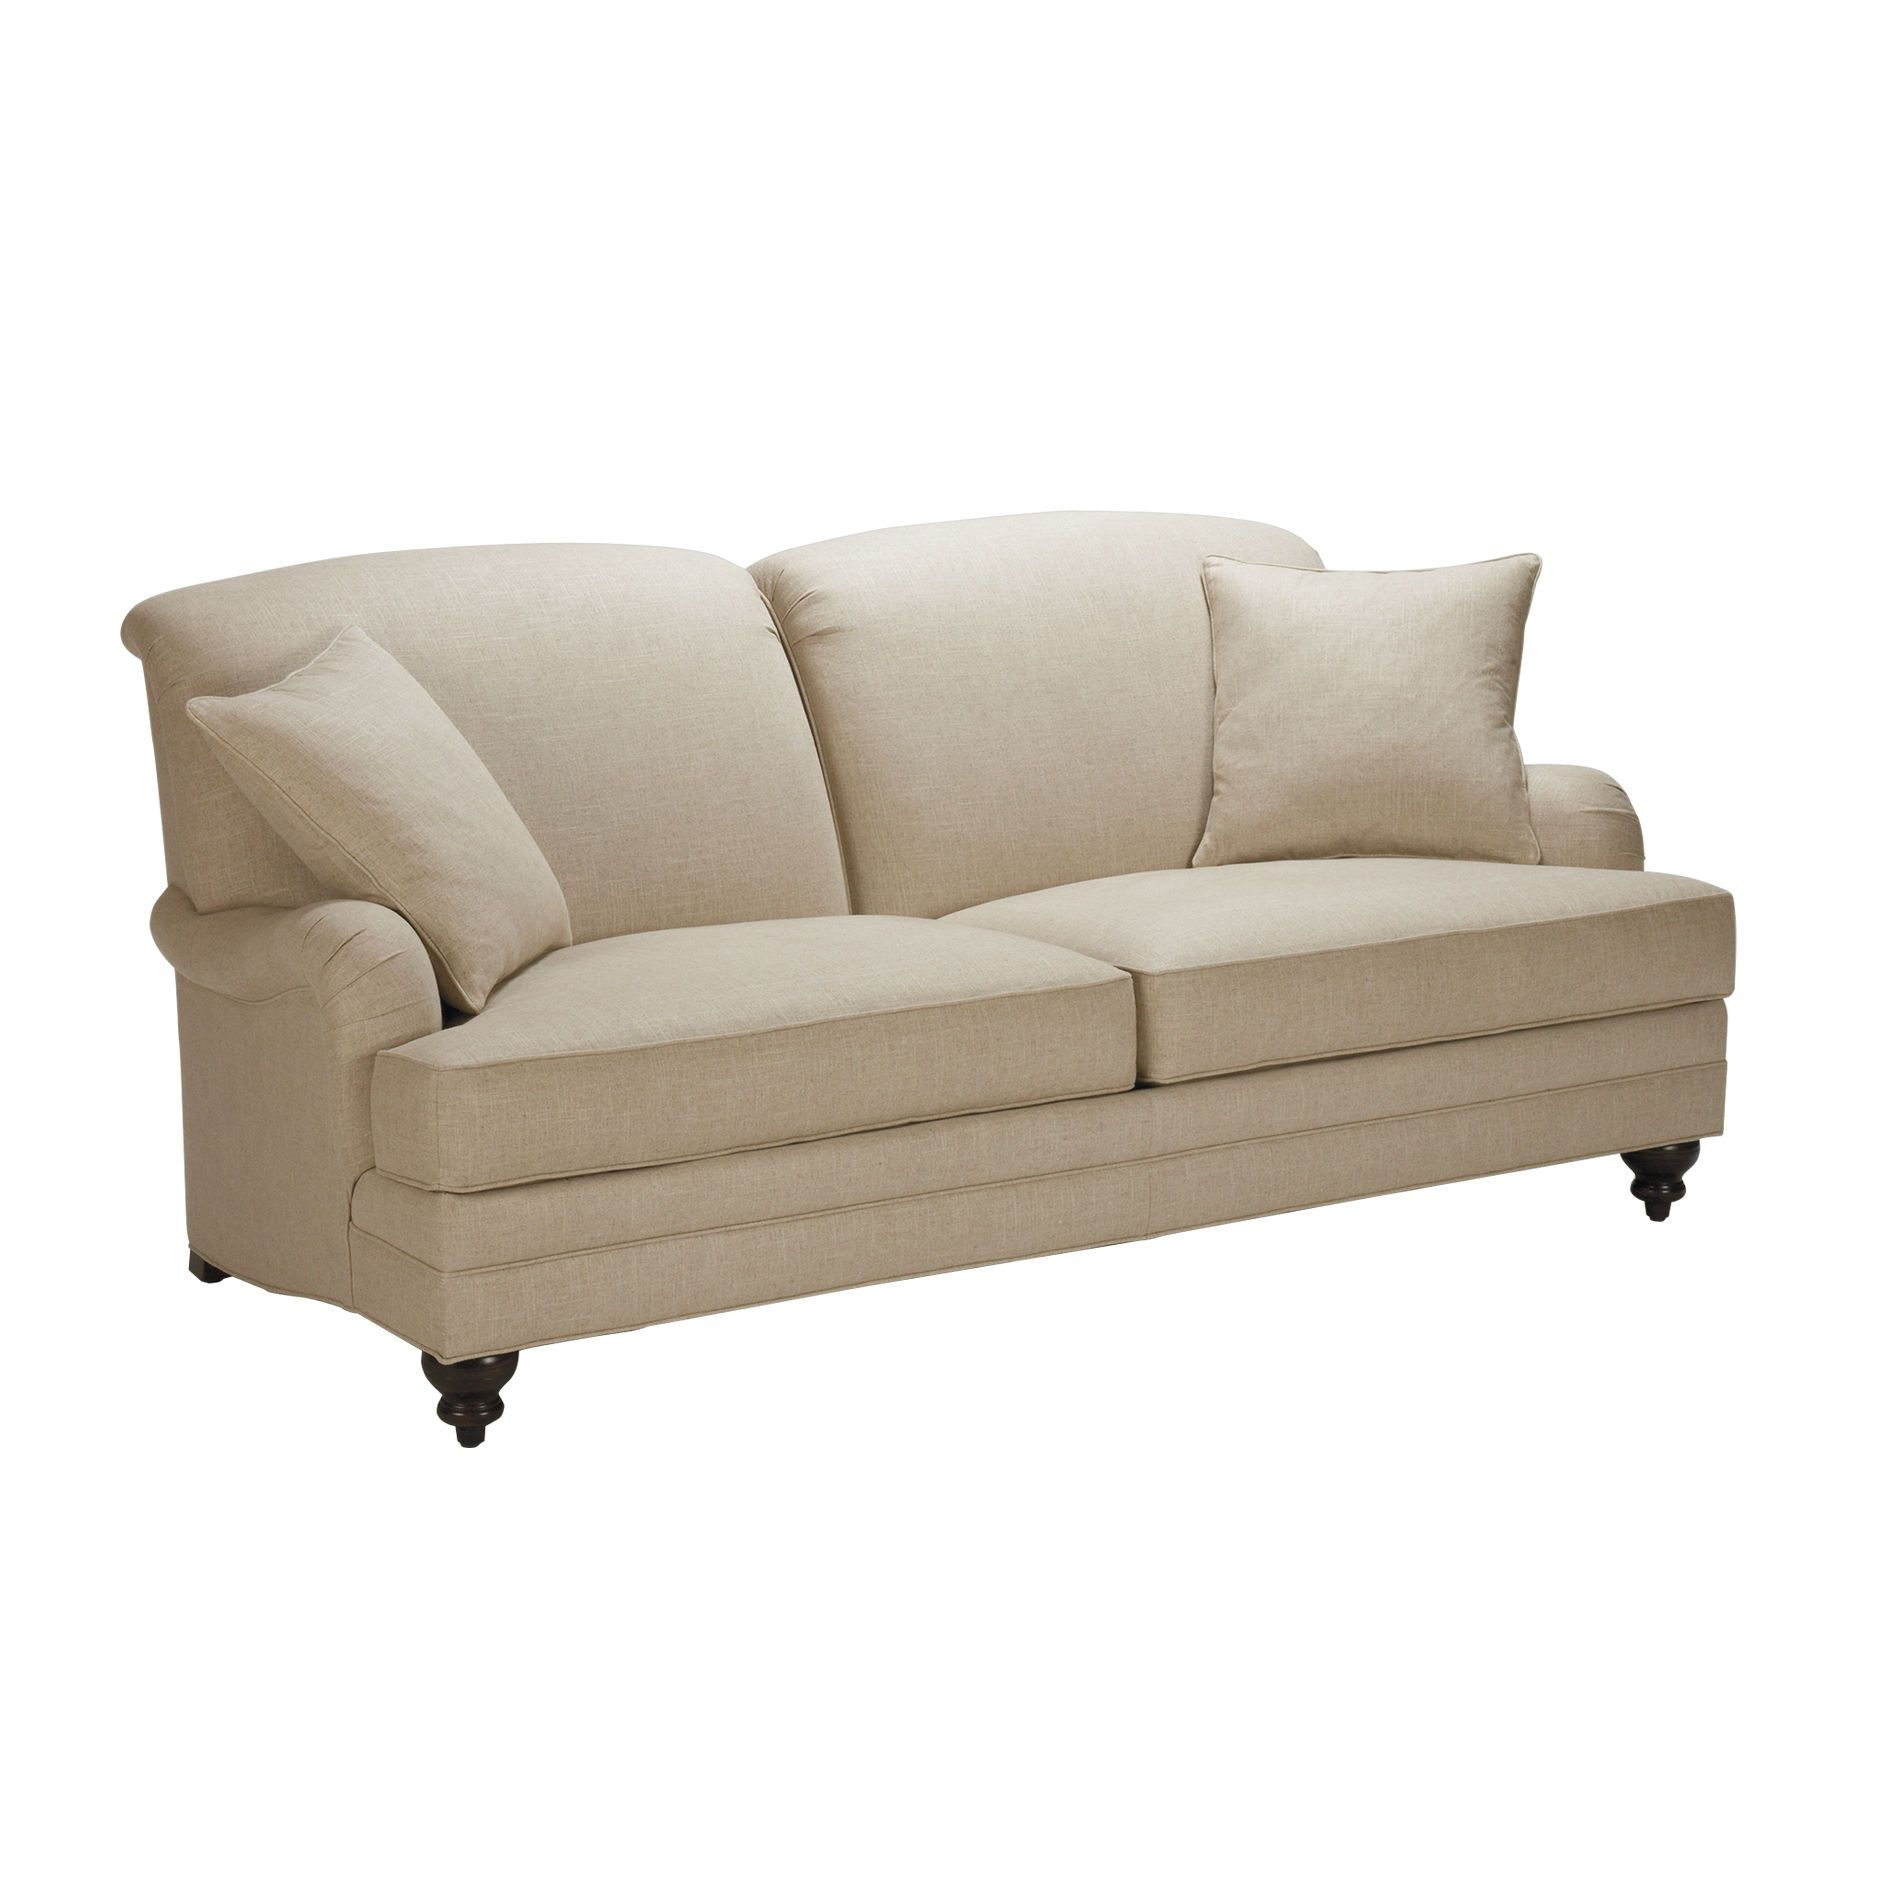 english roll arm sofa light grey leather uk madison sofas ethan allen 79 quotor 85 quotw x 35 quoth 39 quotd